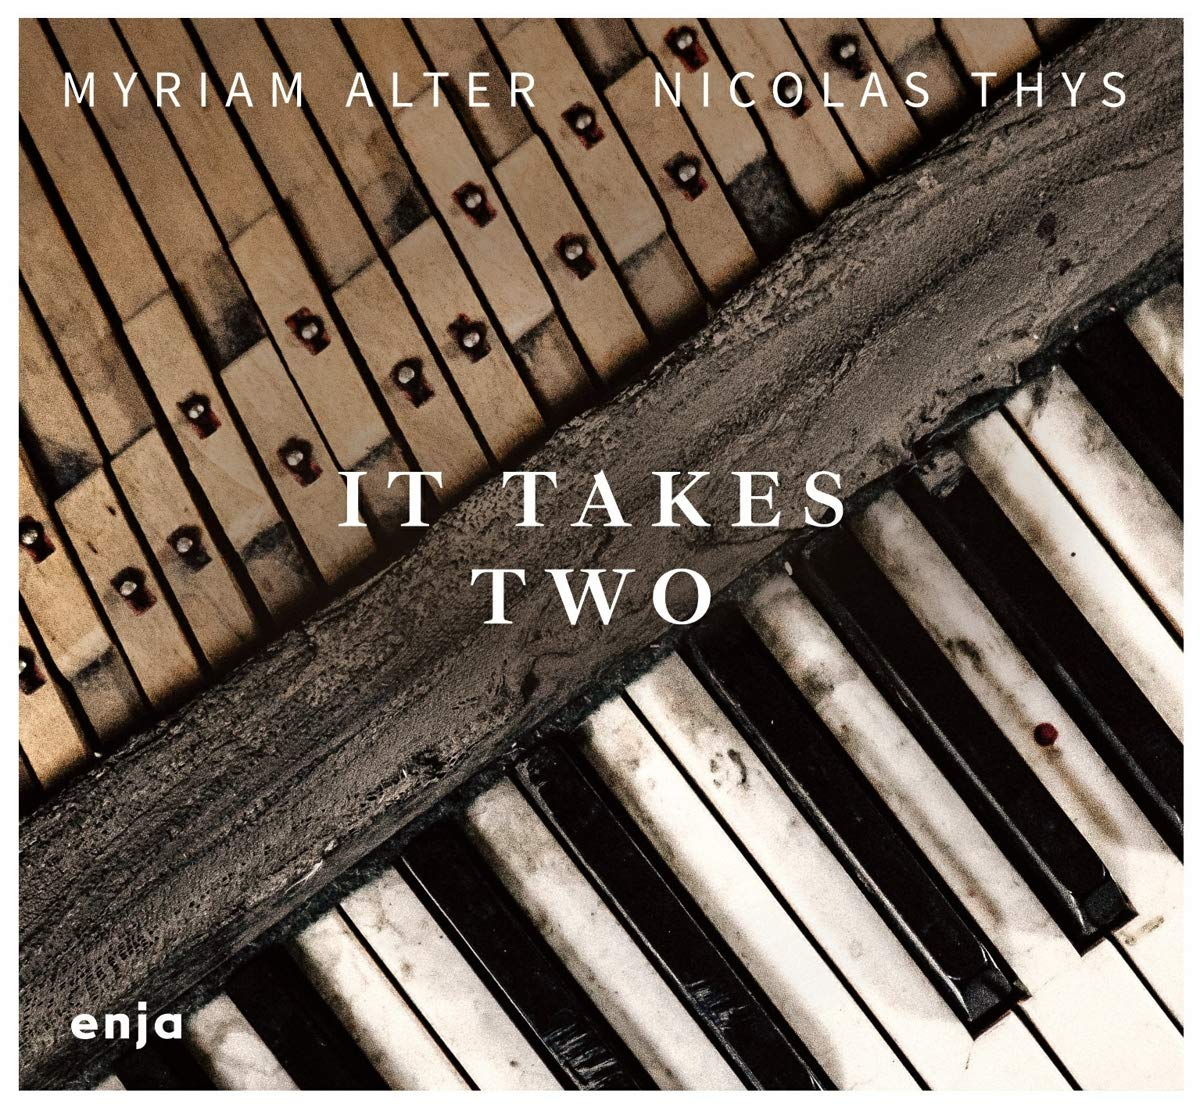 MYRIAM ALTER - Myriam Alter / Nicolas Thys : It Takes Two cover